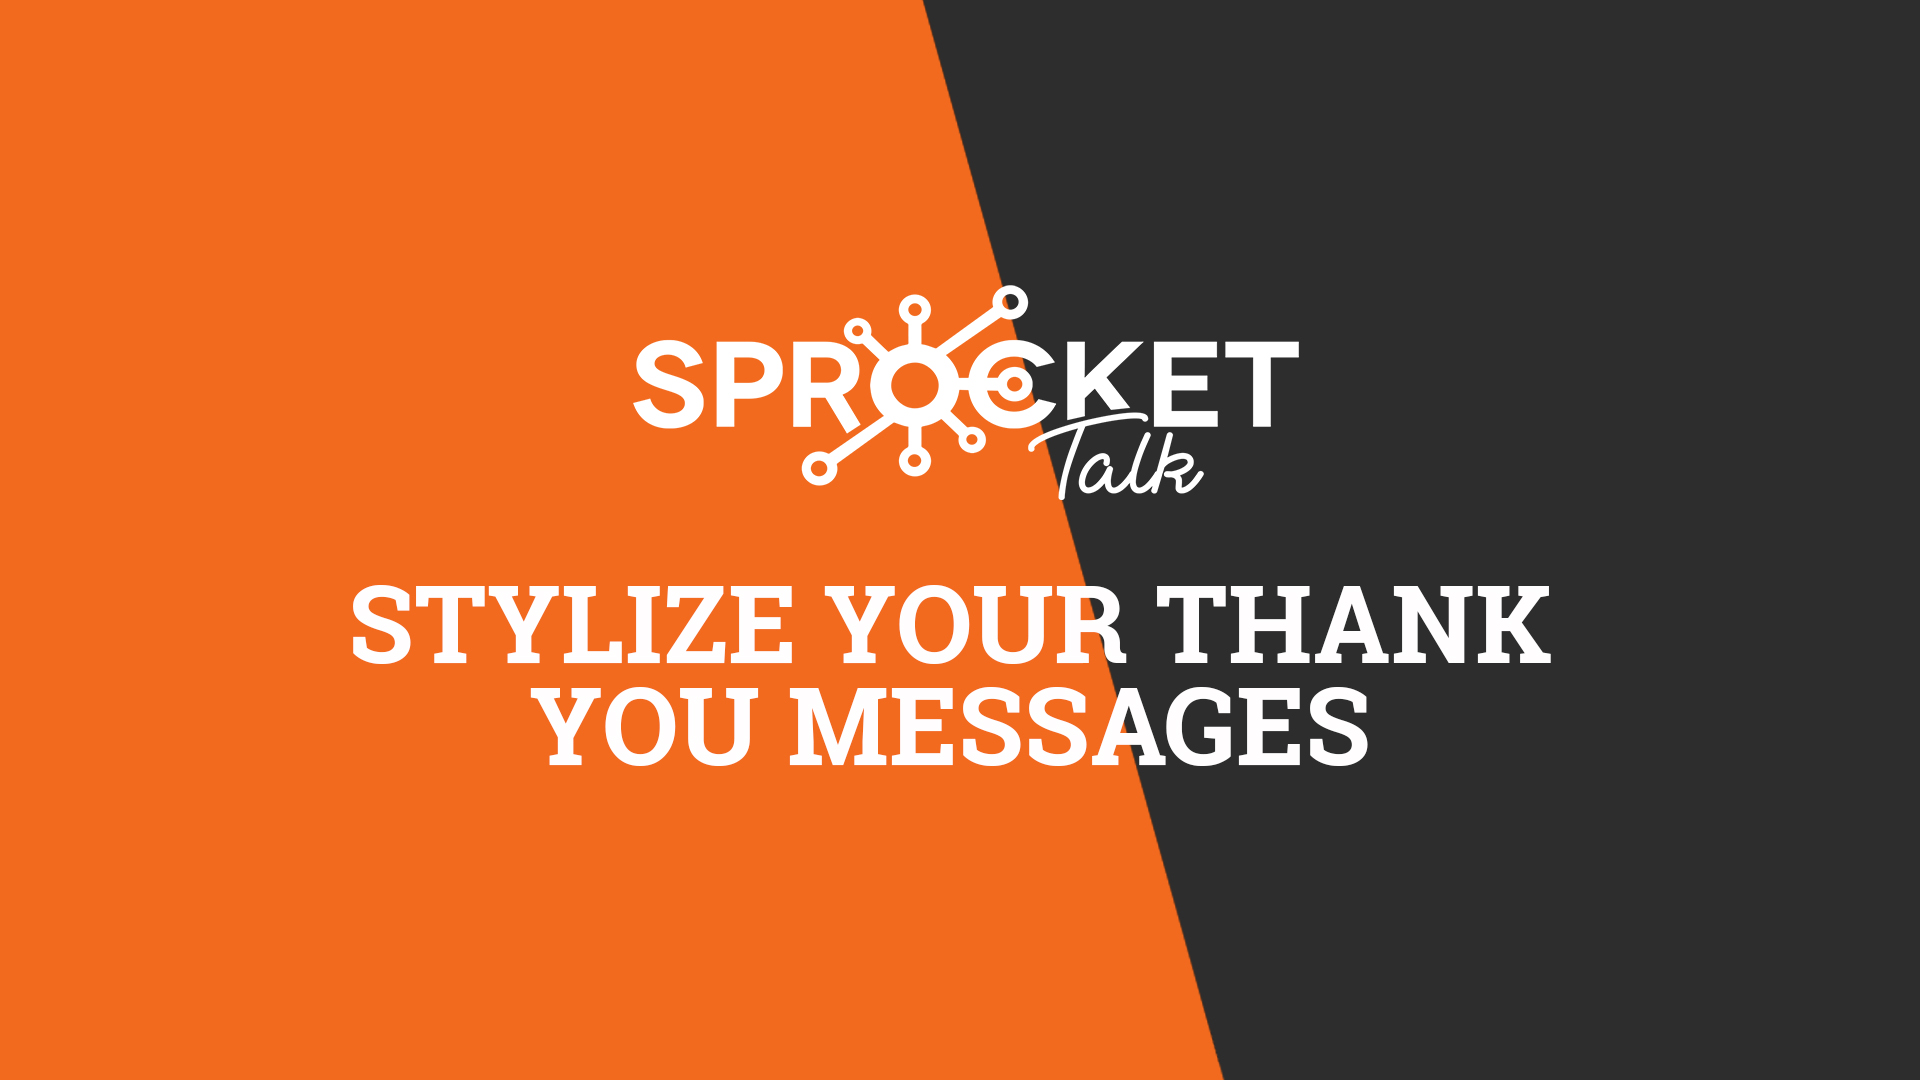 Stylize Your Thank You Messages